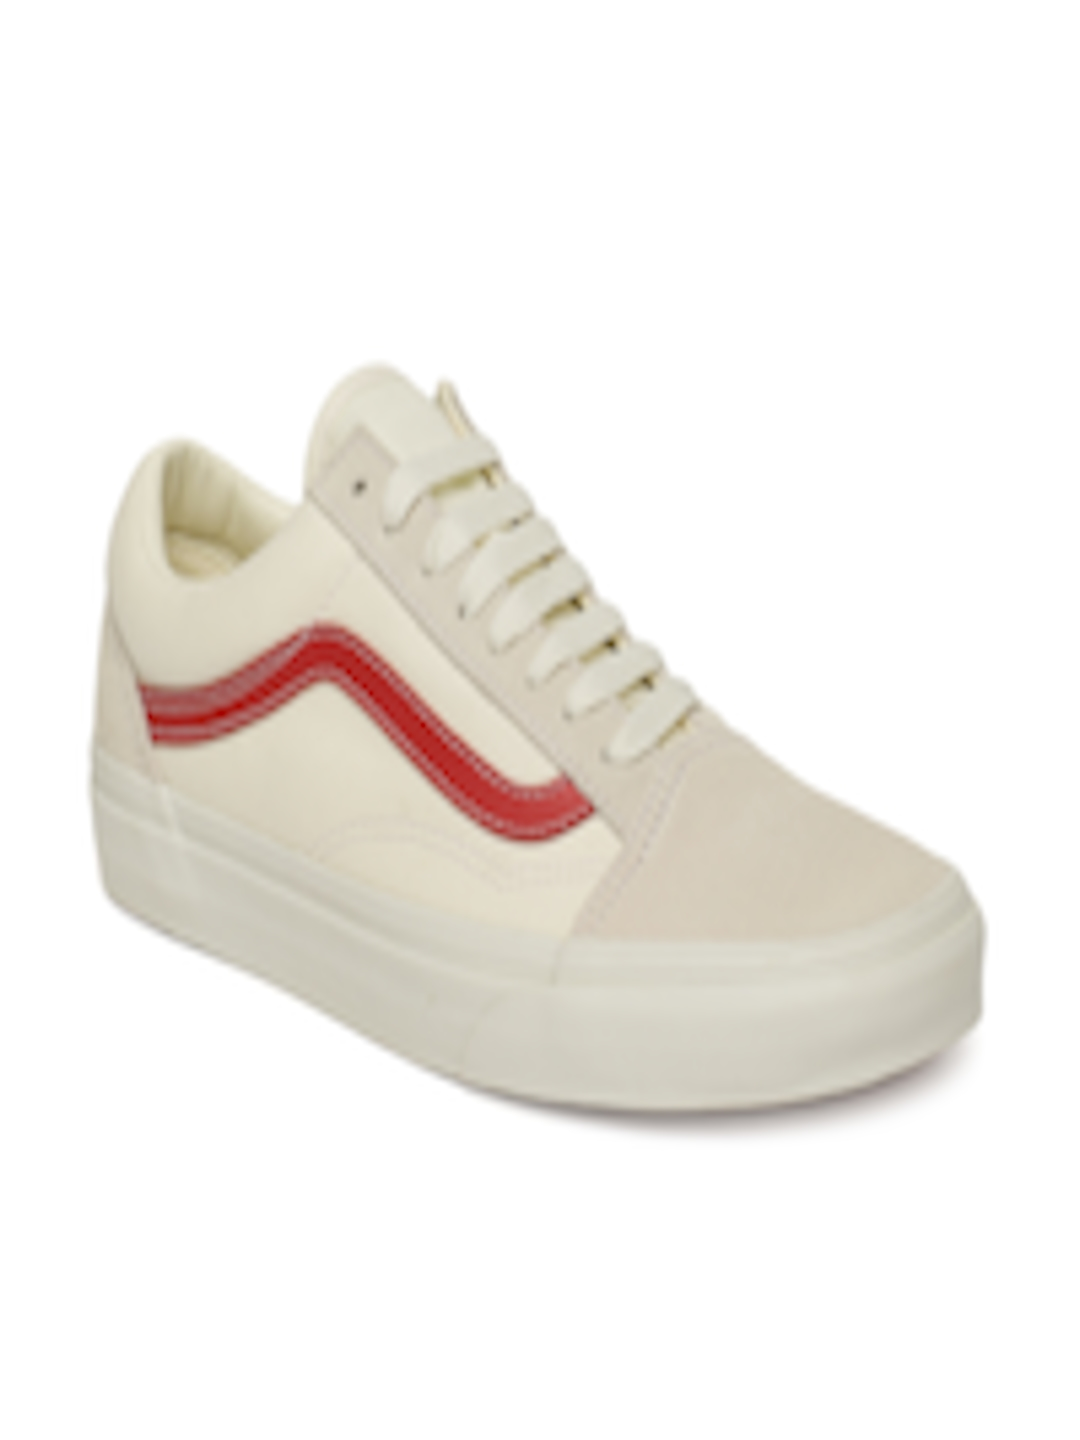 d7cc17a75d Buy Vans Unisex Off White Old Skool Sneakers - Casual Shoes for Unisex  4296347